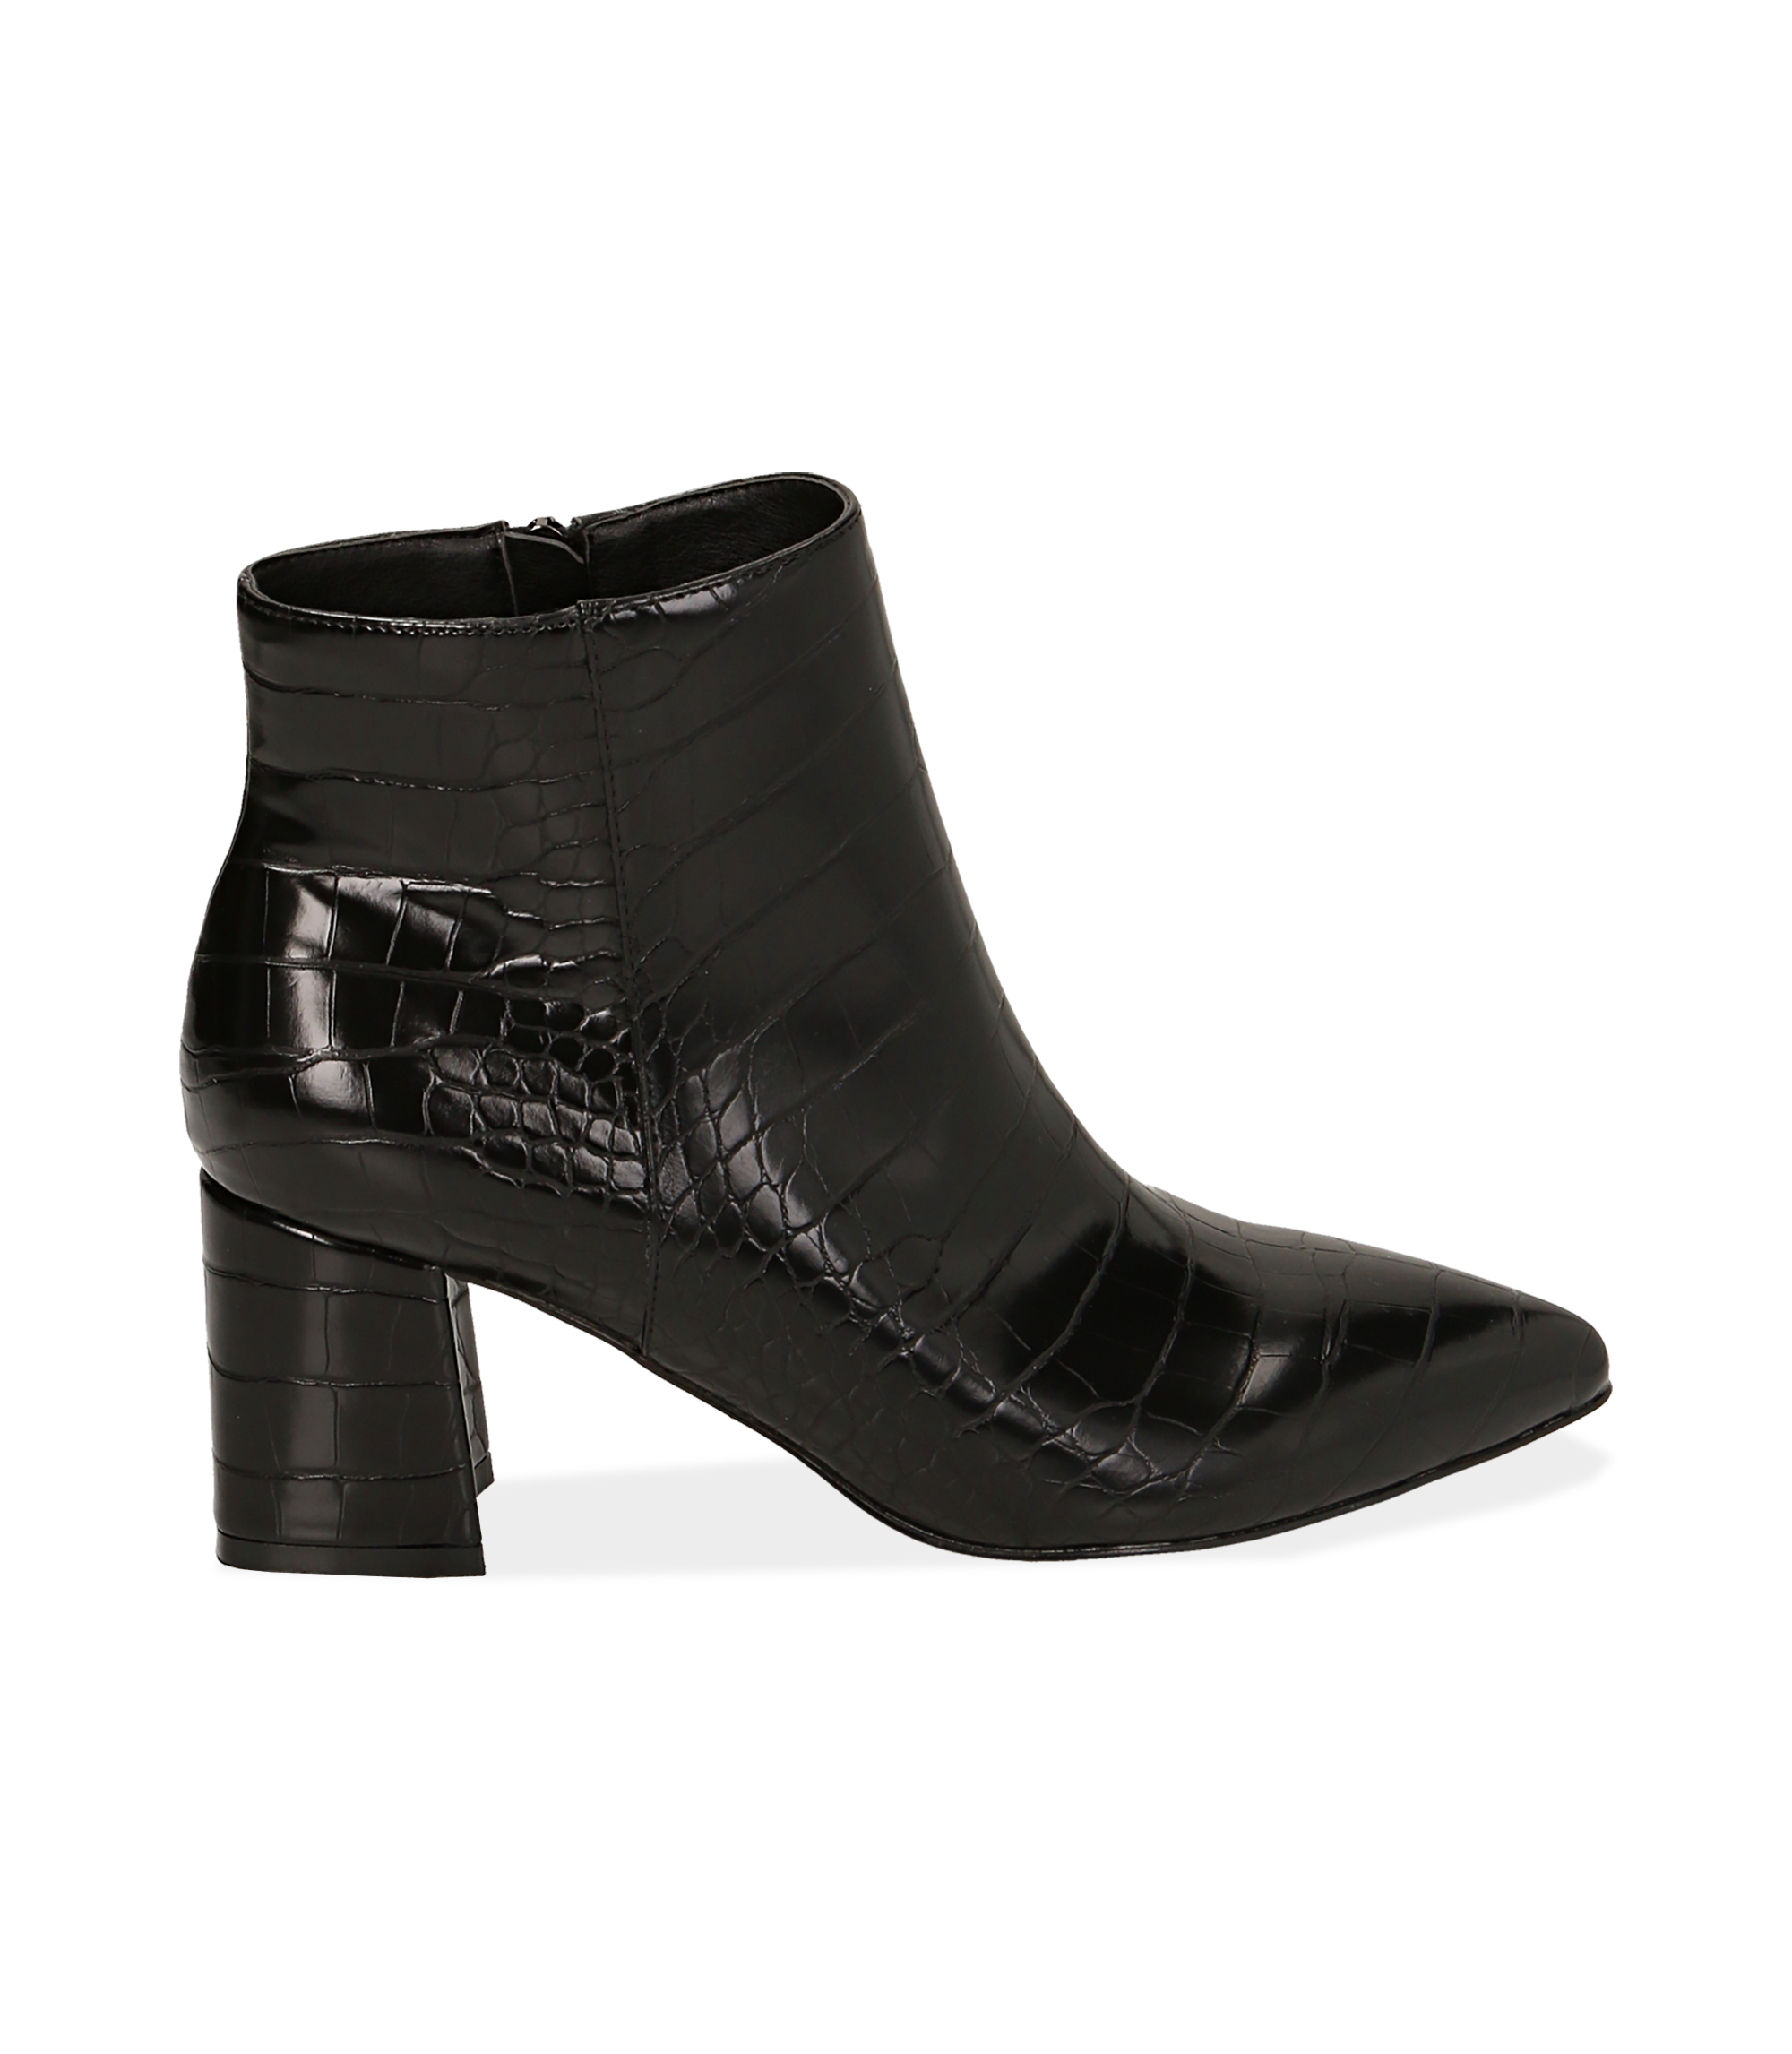 Ankle boots neri stampa cocco, tacco 6,50 cm